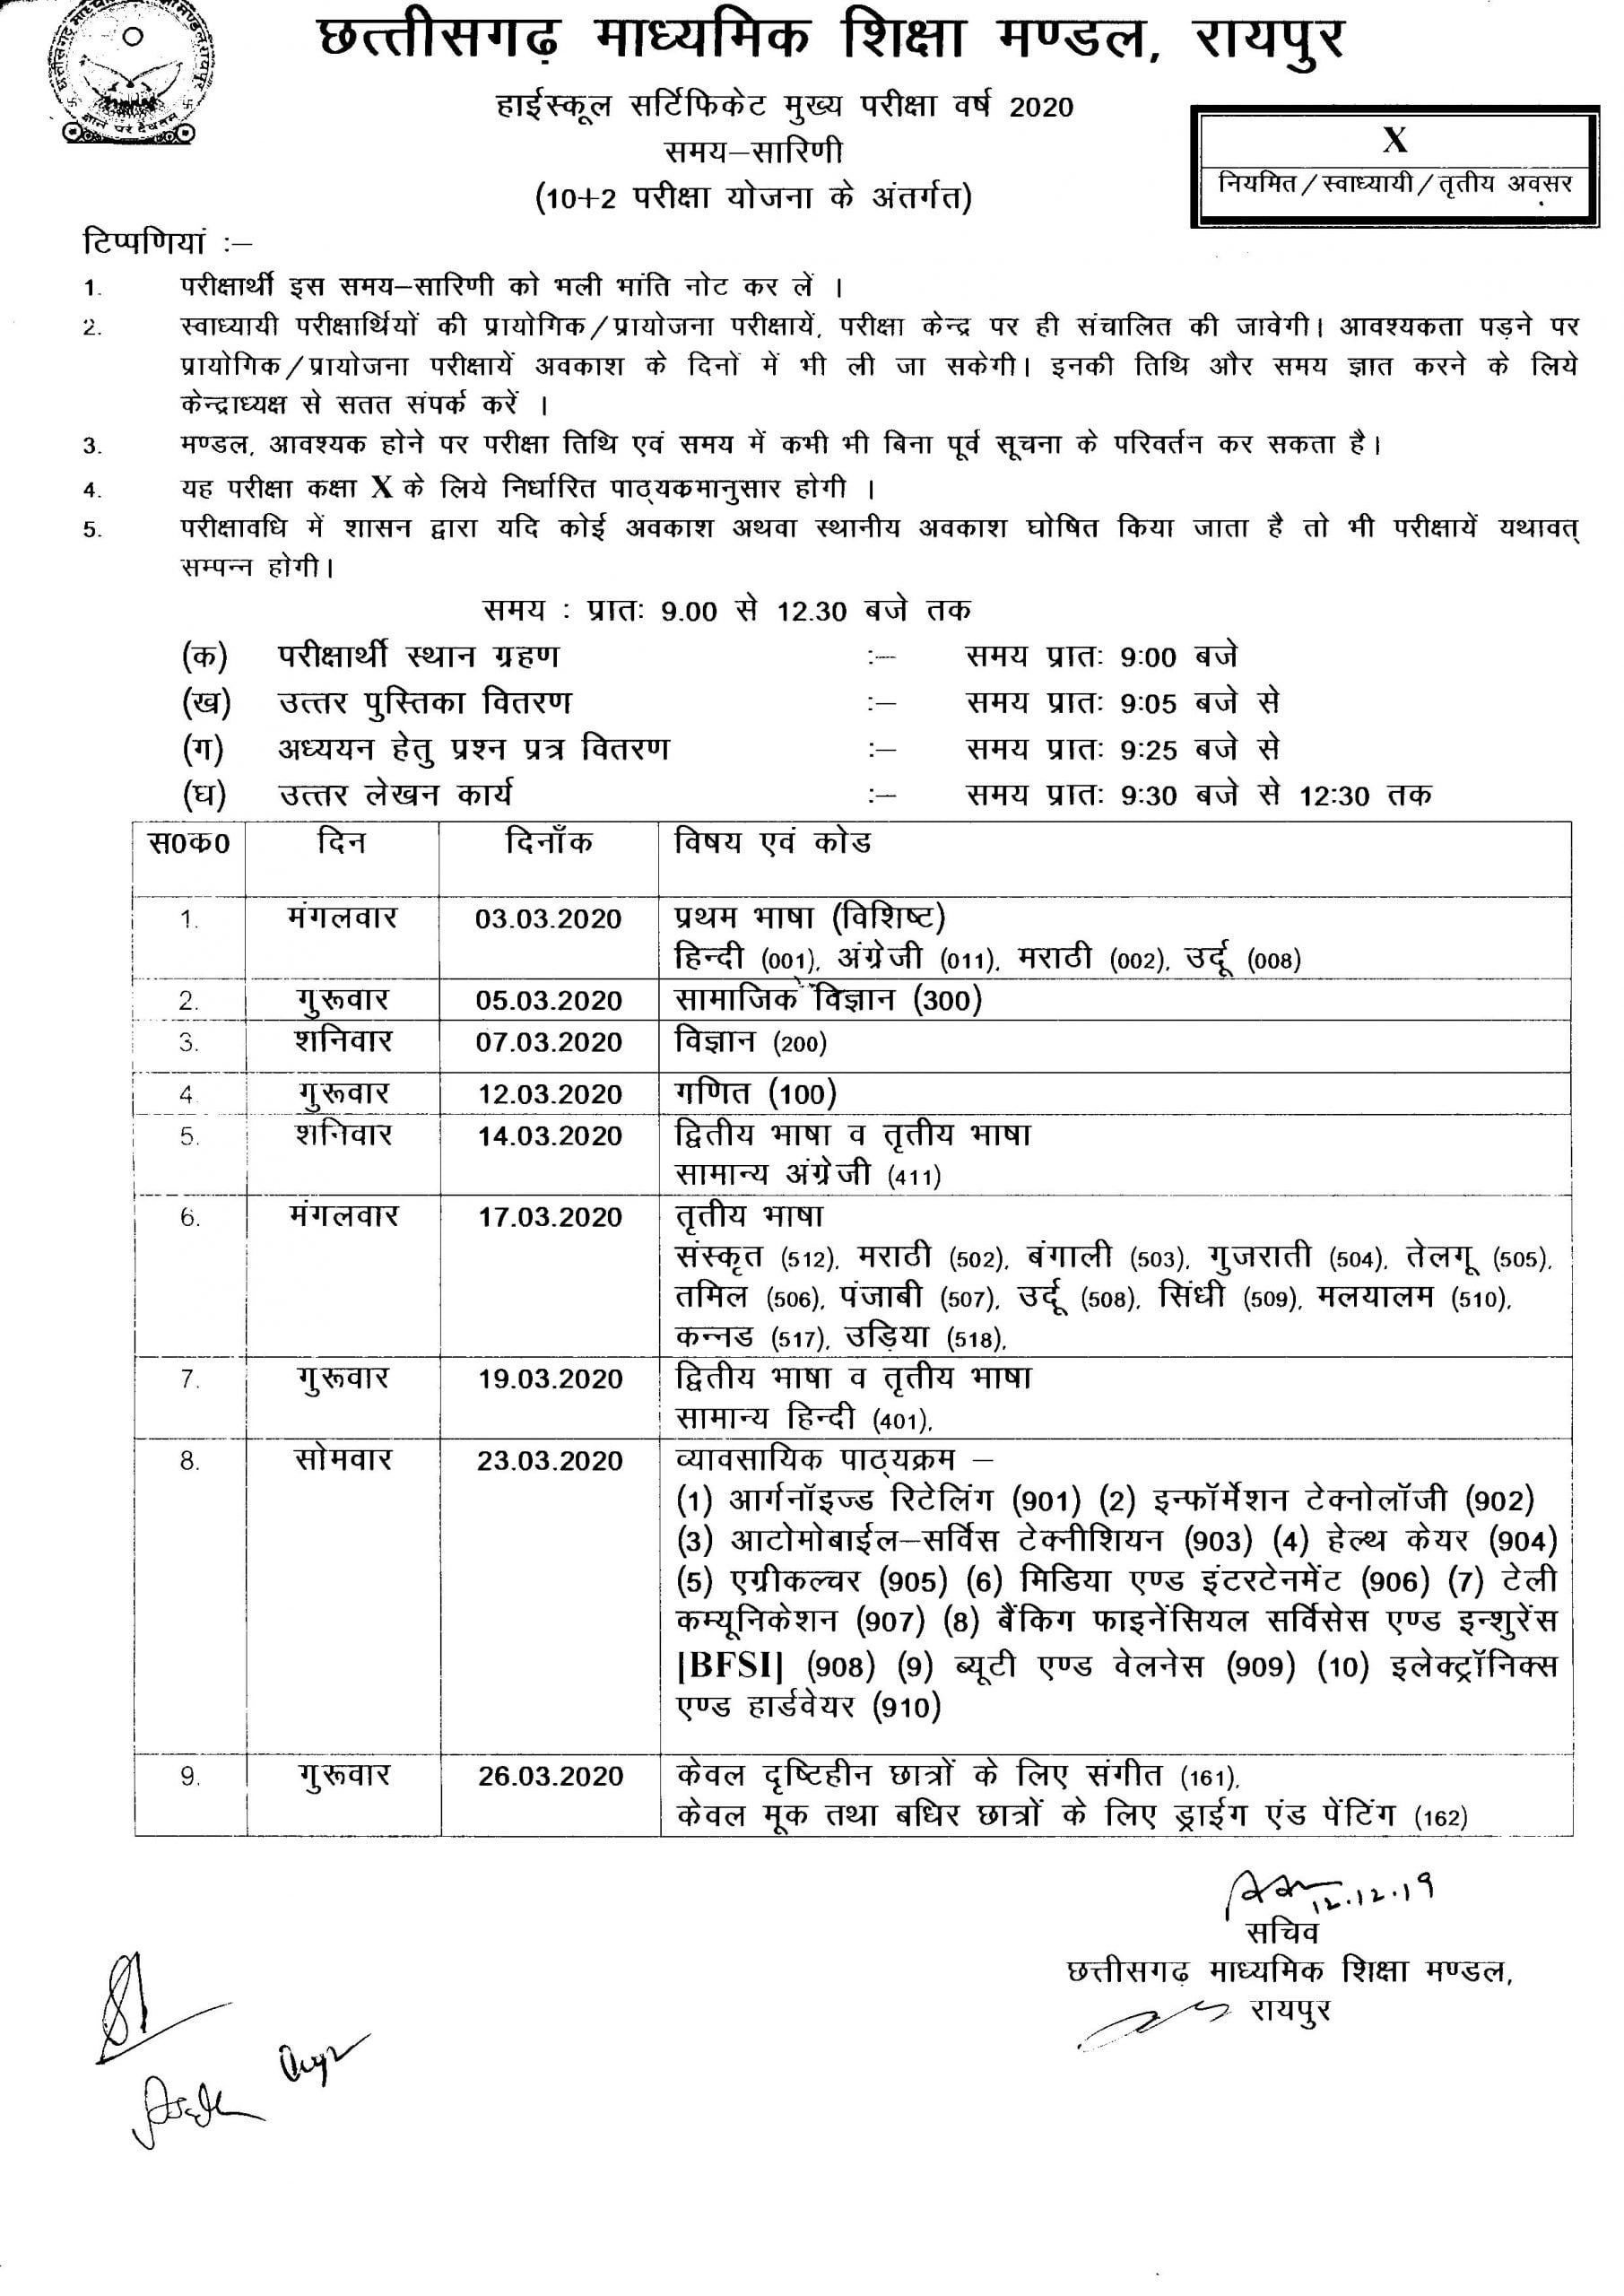 CGBSE 10th Time Table 2020